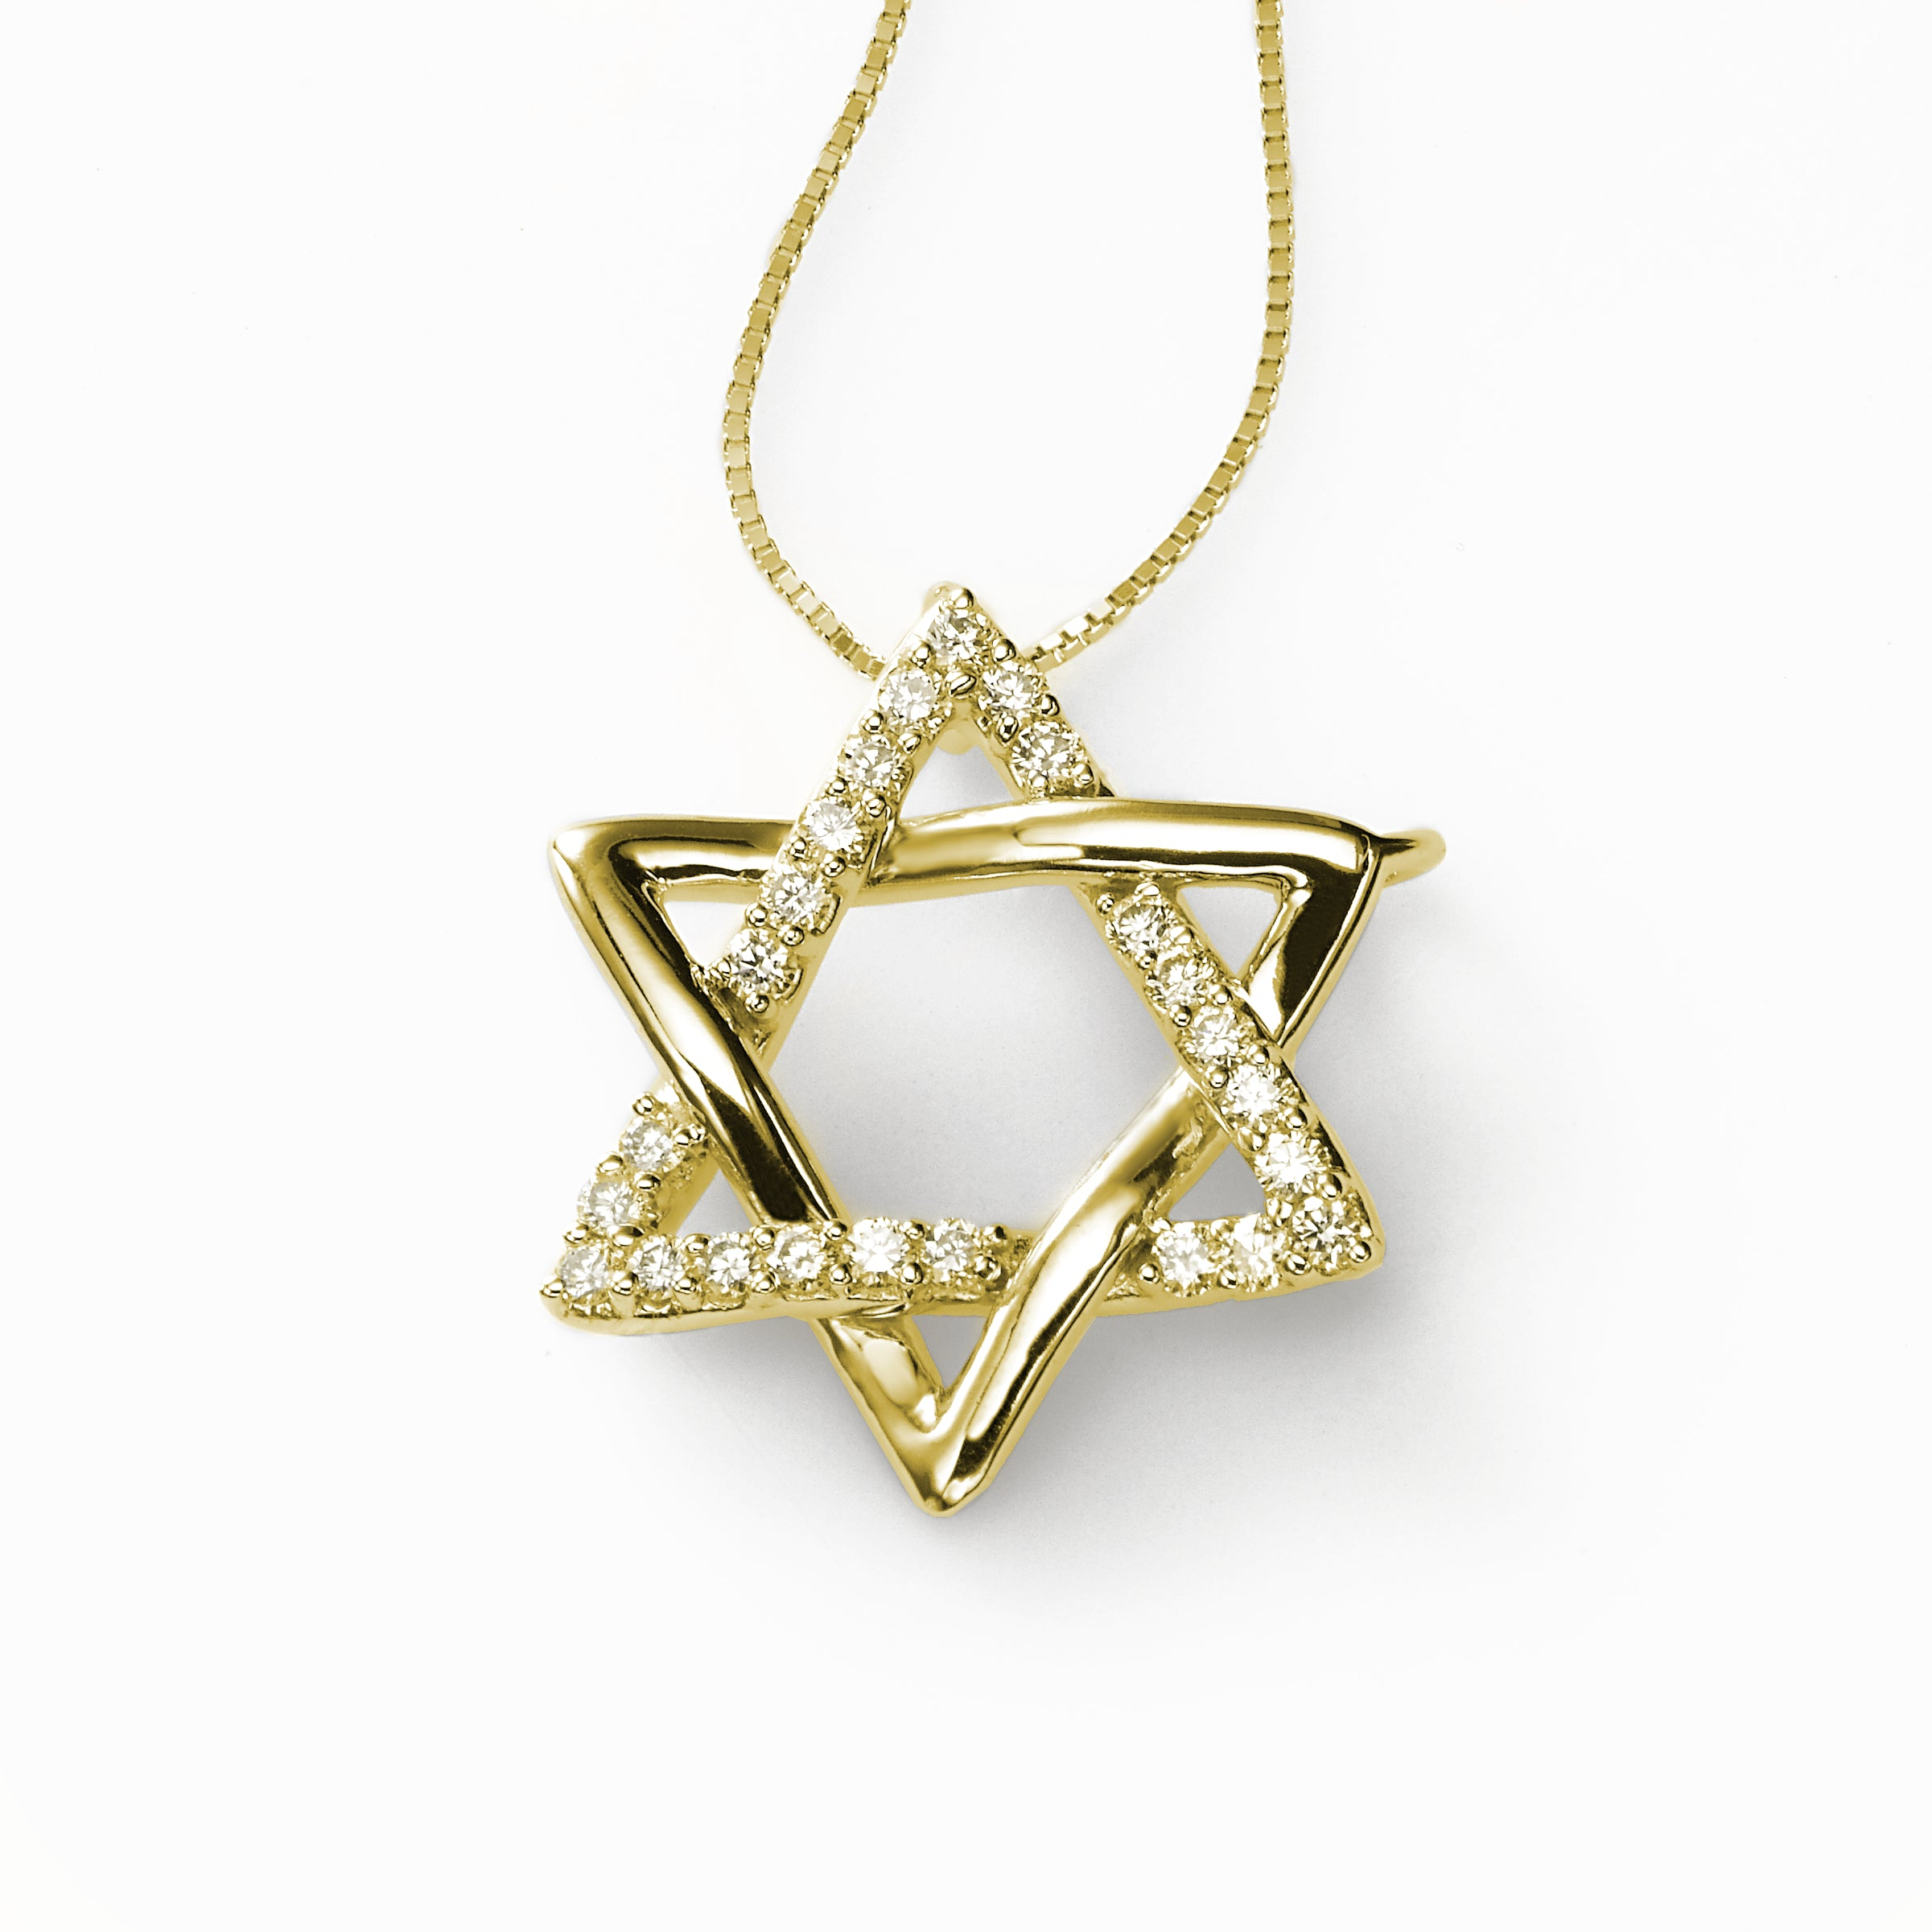 Stunning Star of David, 14K Yellow Gold